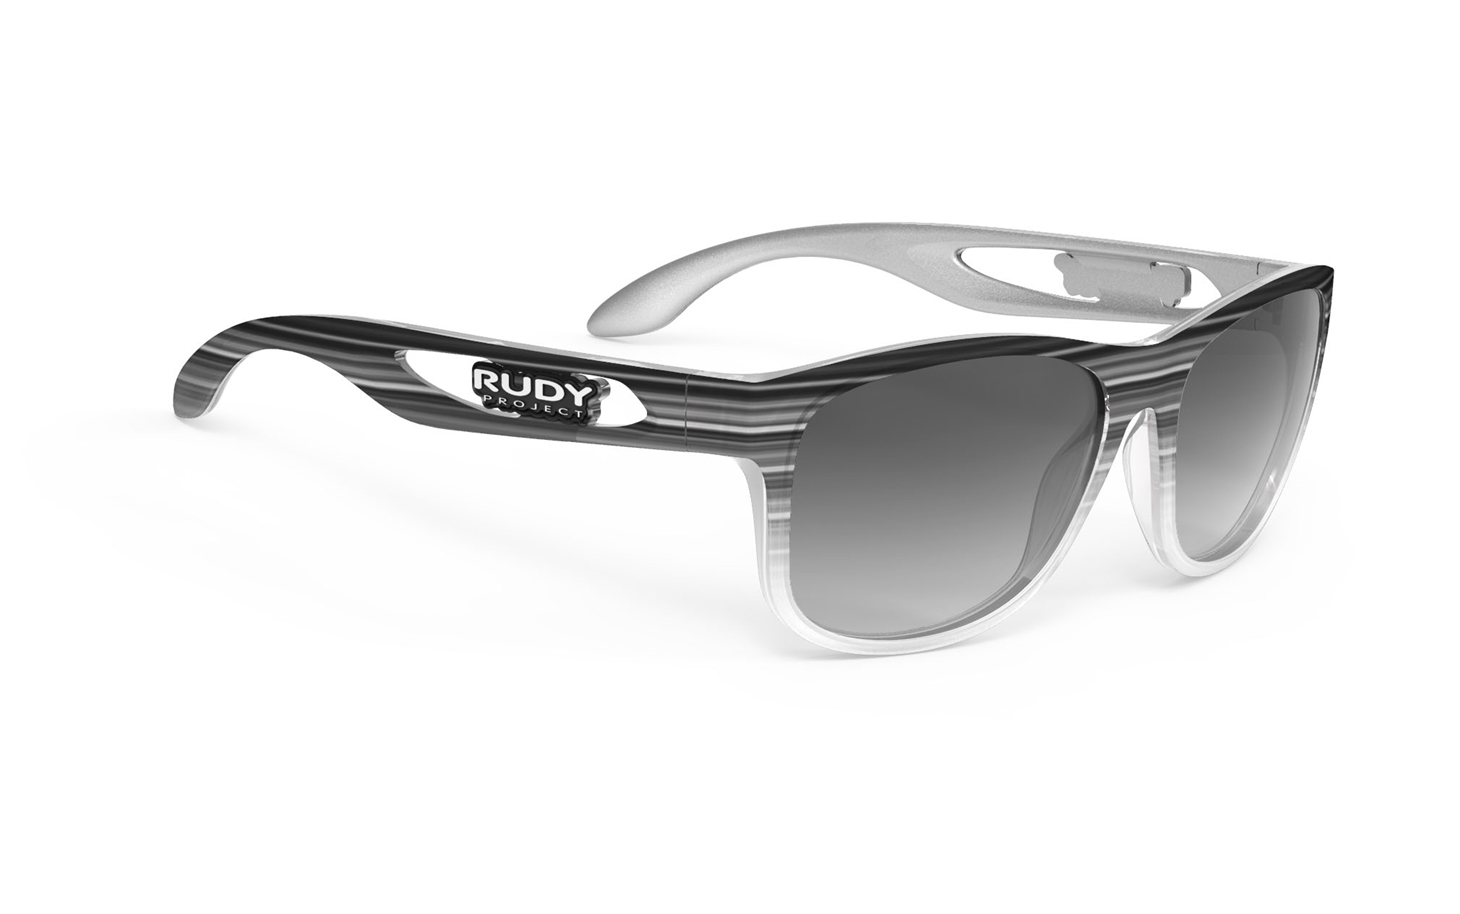 Active Lifestyle Eyewear - Rudy Project a0029ea4c8